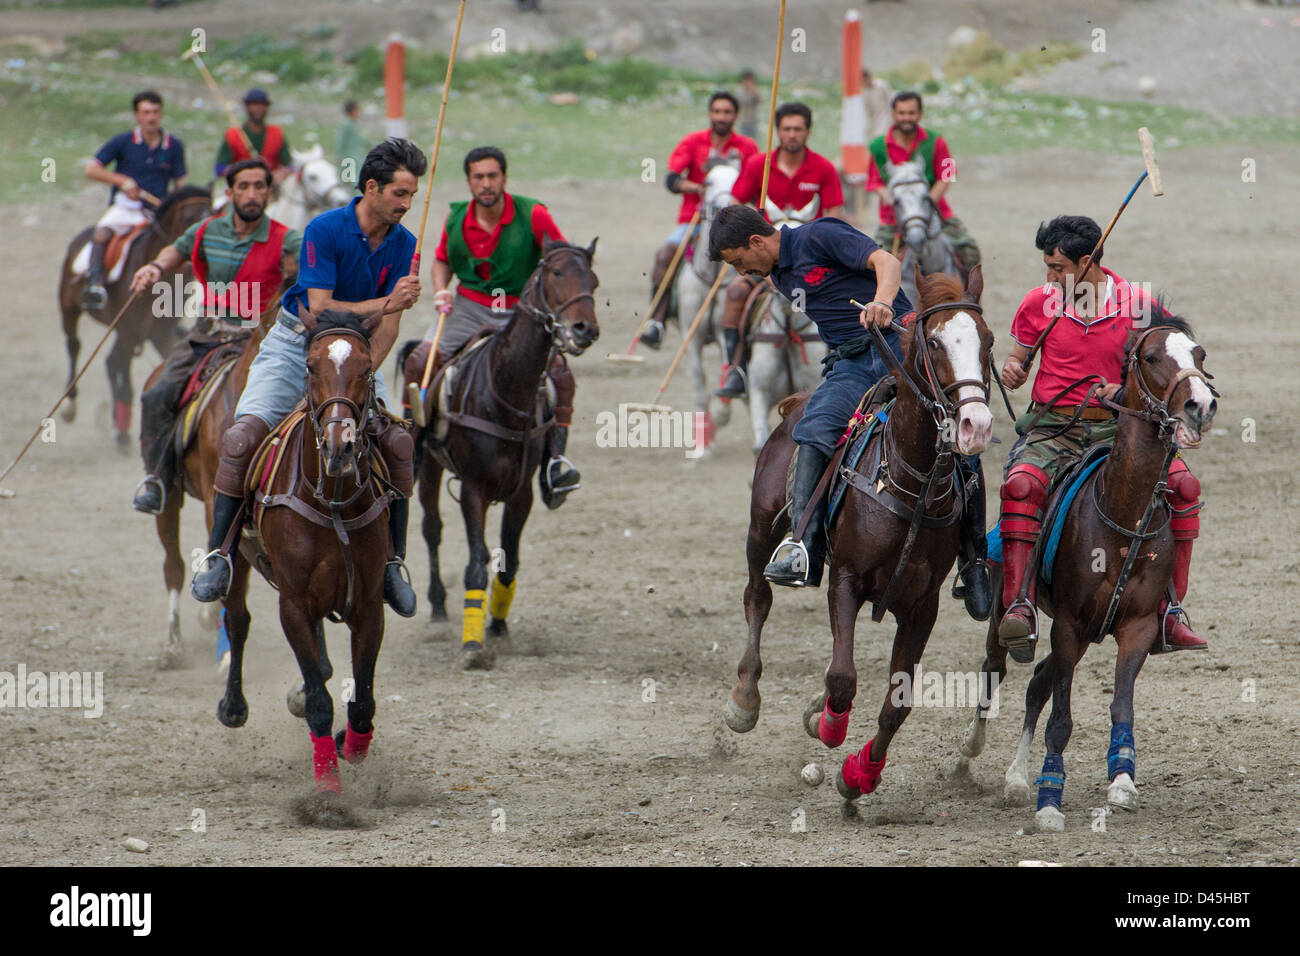 Players making a charge during a polo match, Chitral, Khyber-Pakhtunkhwa, Pakistan - Stock Image